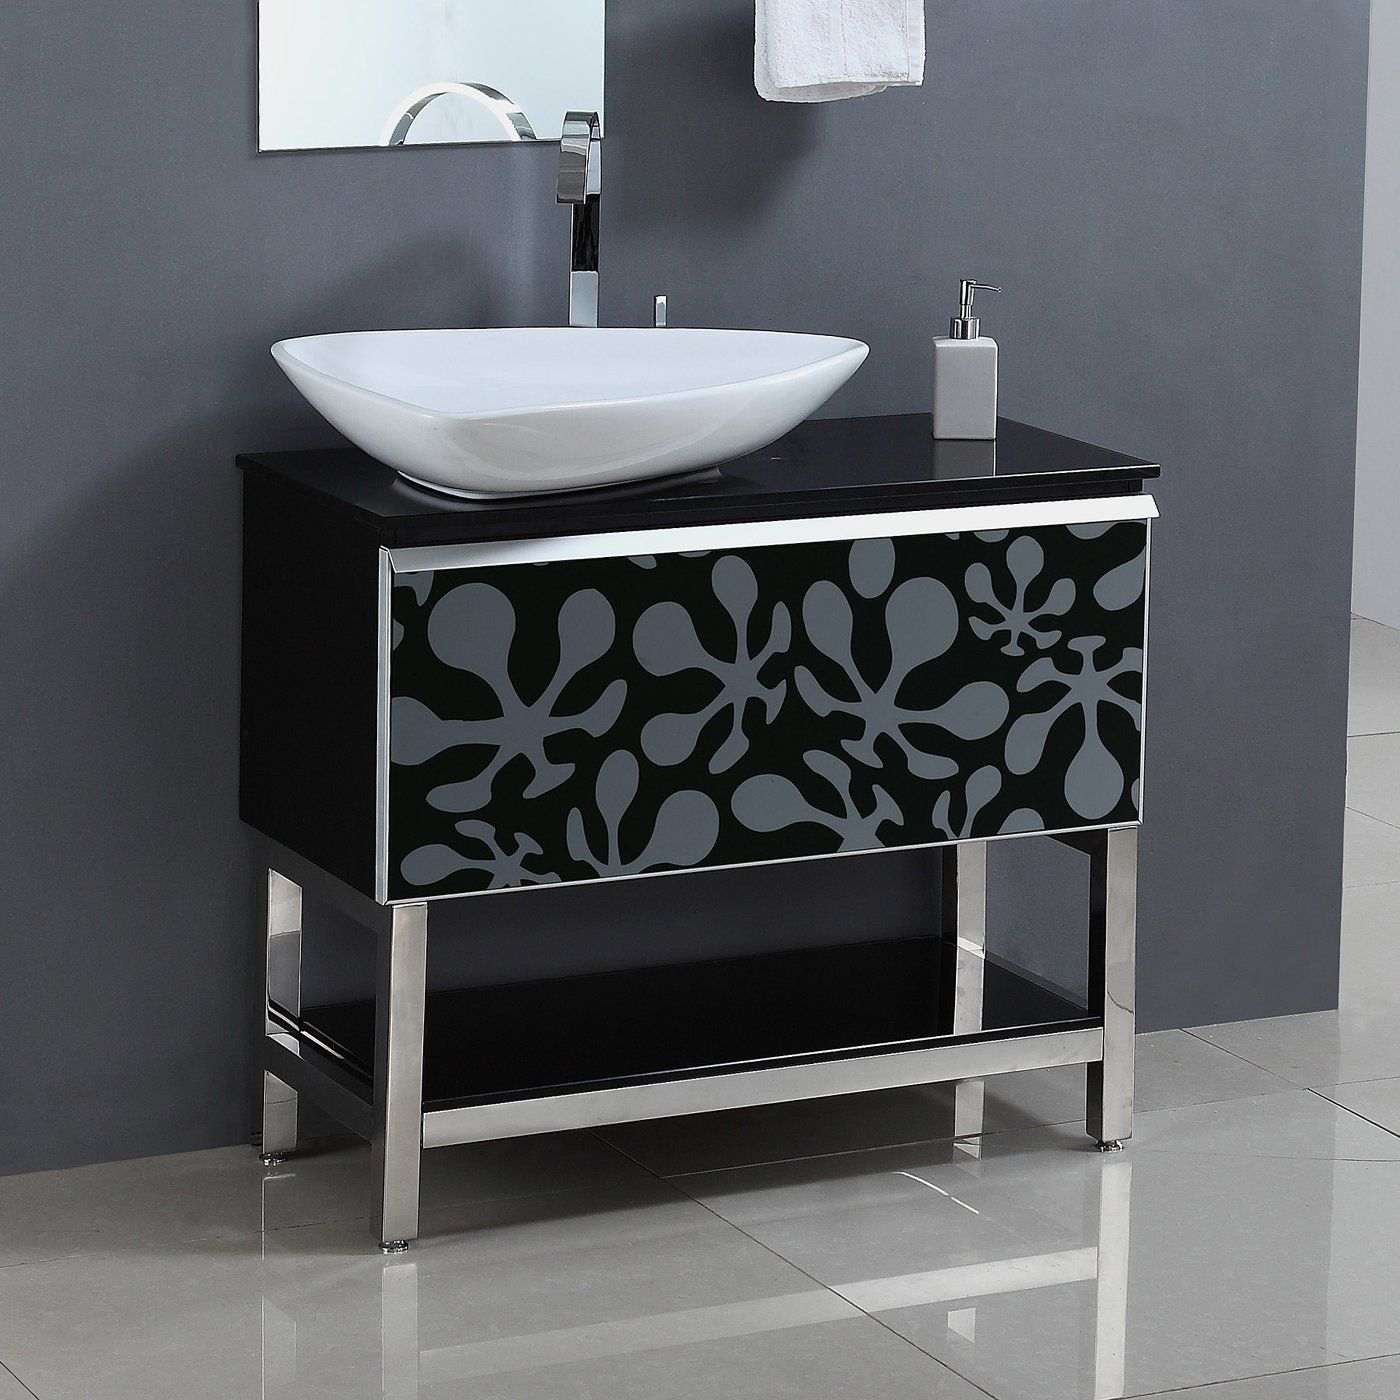 funky bathroom sinks funky bathroom vanity for the home funky 12938